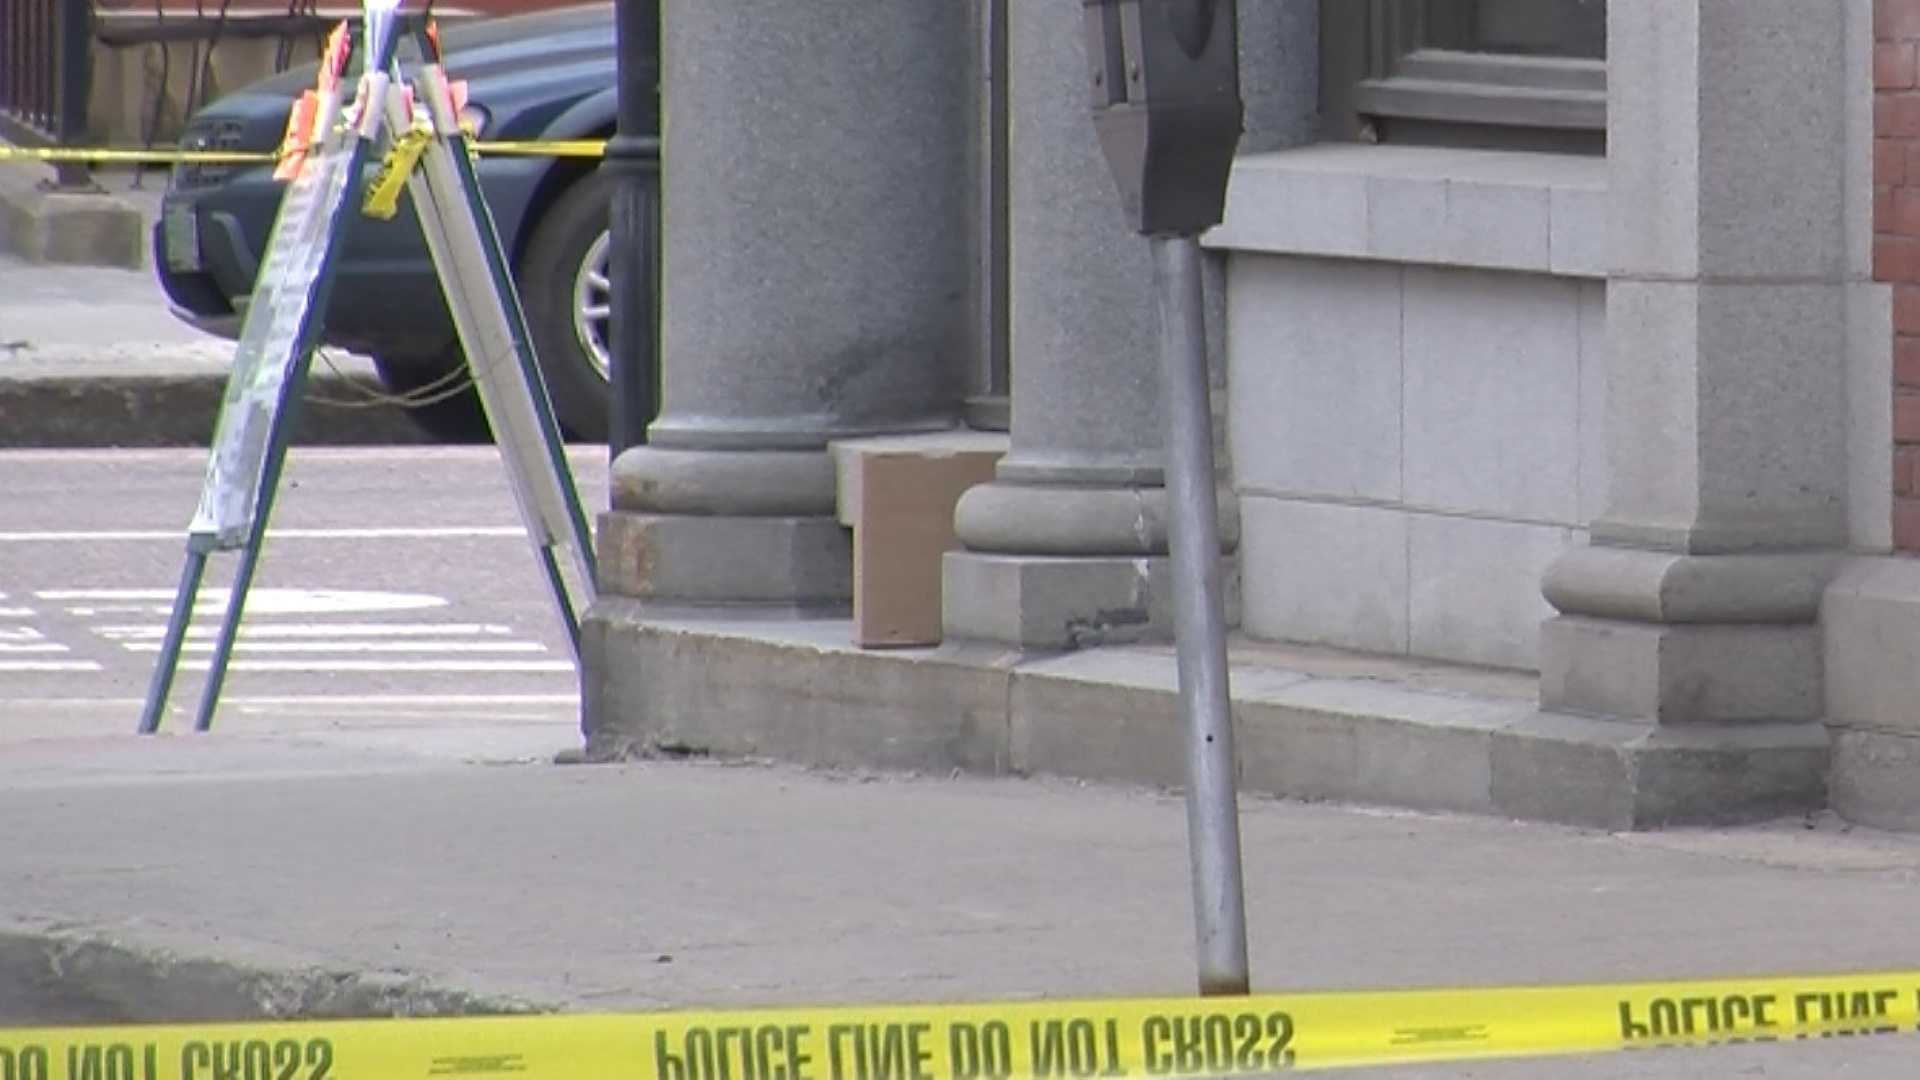 Police inspect a suspicious package left on a windowsill at the T.D. Bank in Montpelier.